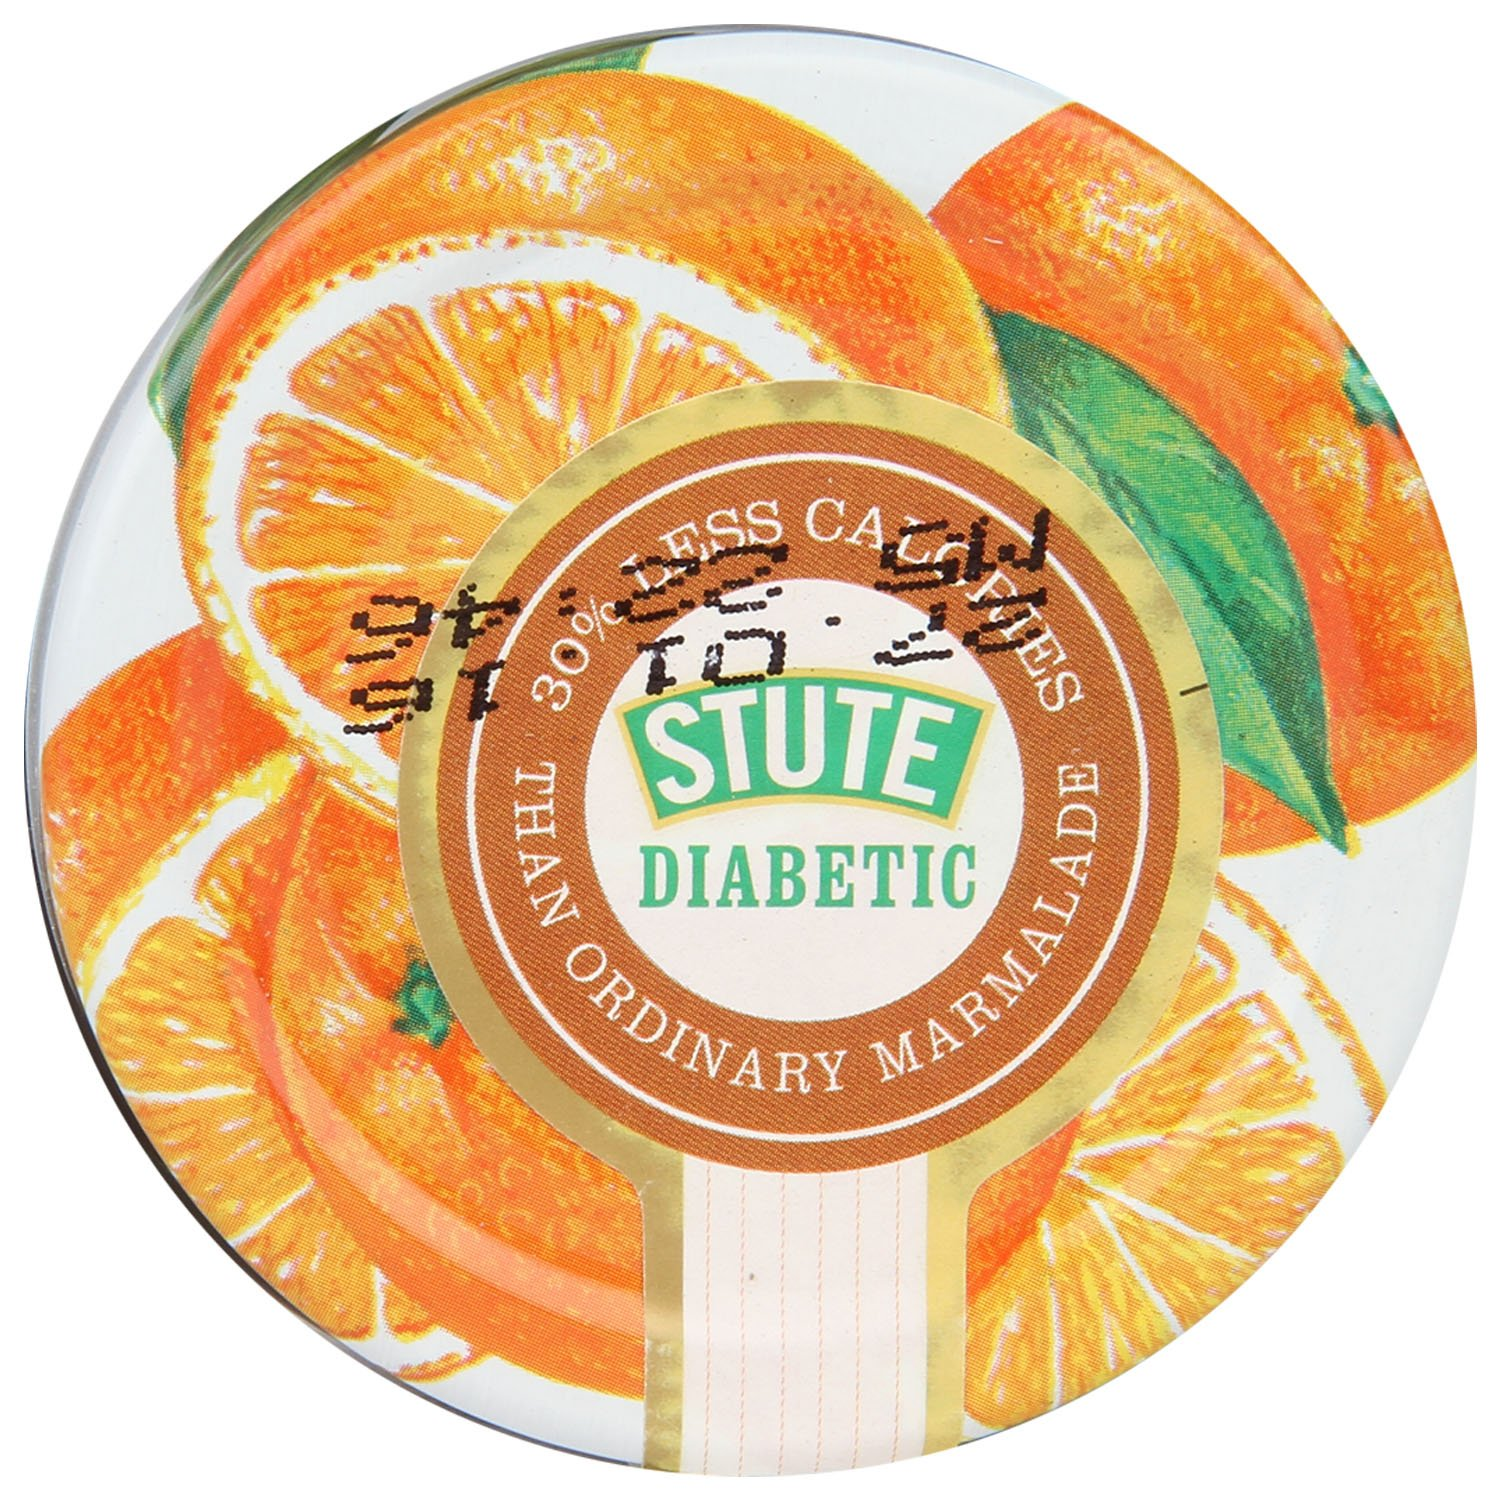 Stute Foods - Diabetic Range - Thick Cut Orange Marmalade - 430g